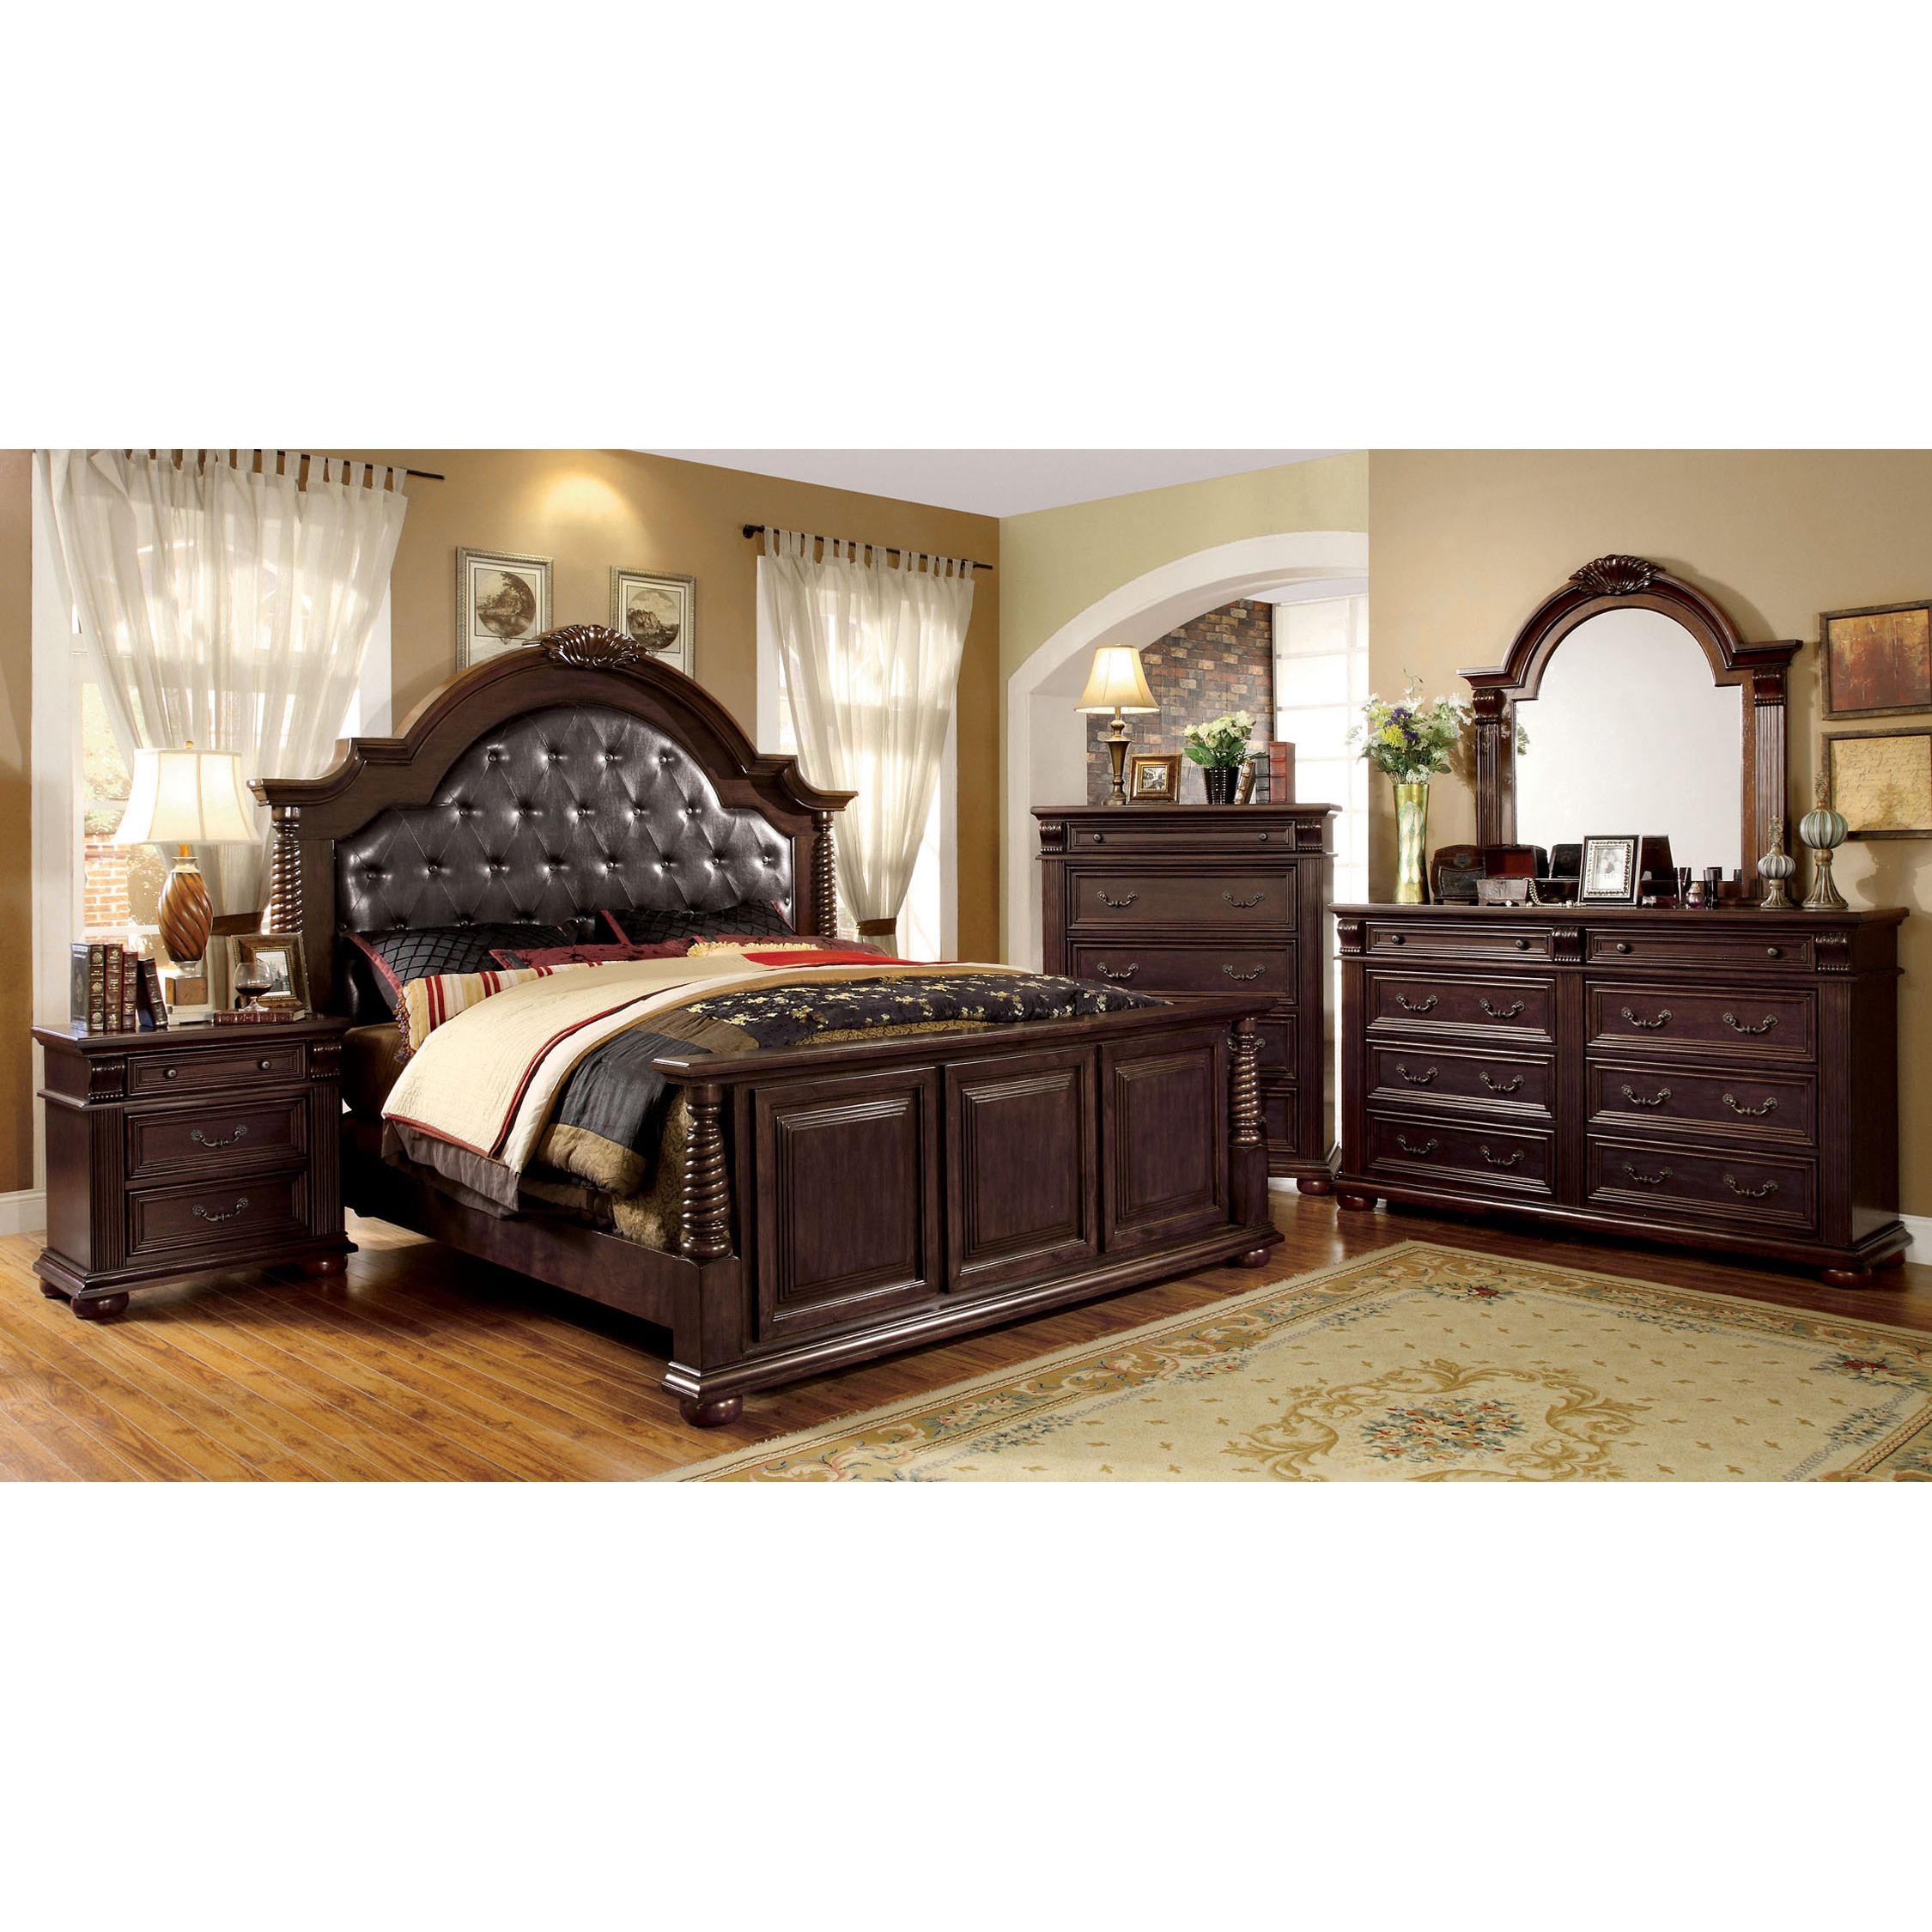 Furniture of america angelica english style brown cherry piece